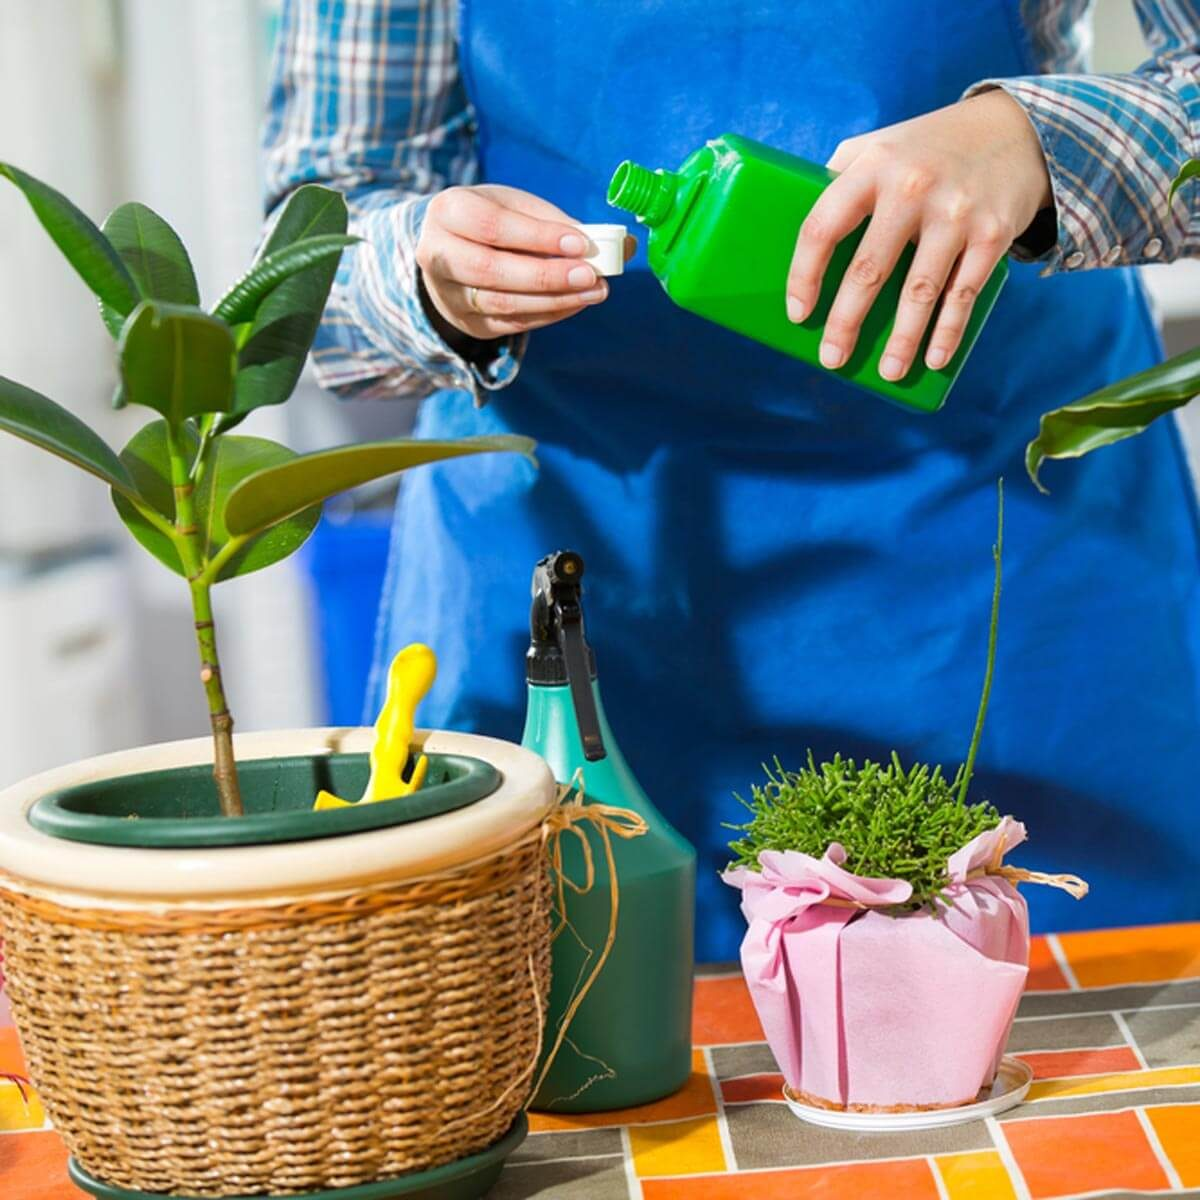 dfh2_shutterstock_243025486 fertilizing indoor plants